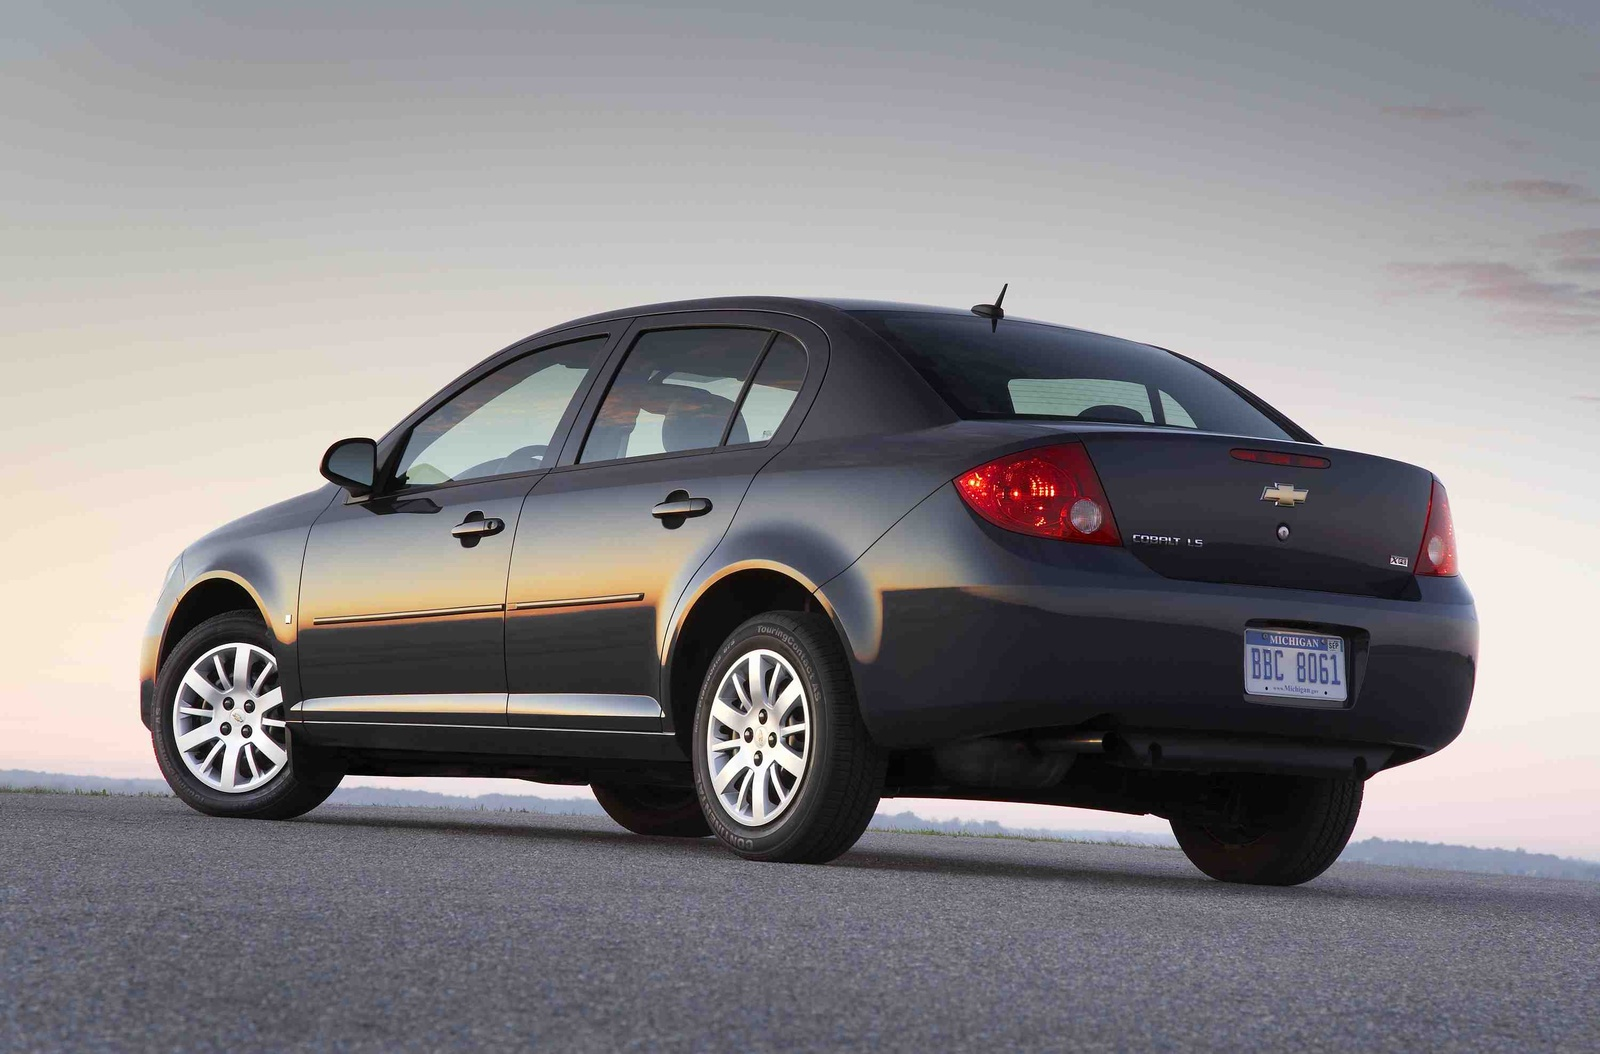 Cobalt chevy cobalt 2007 reviews : Chevrolet Cobalt 2005: Review, Amazing Pictures and Images – Look ...